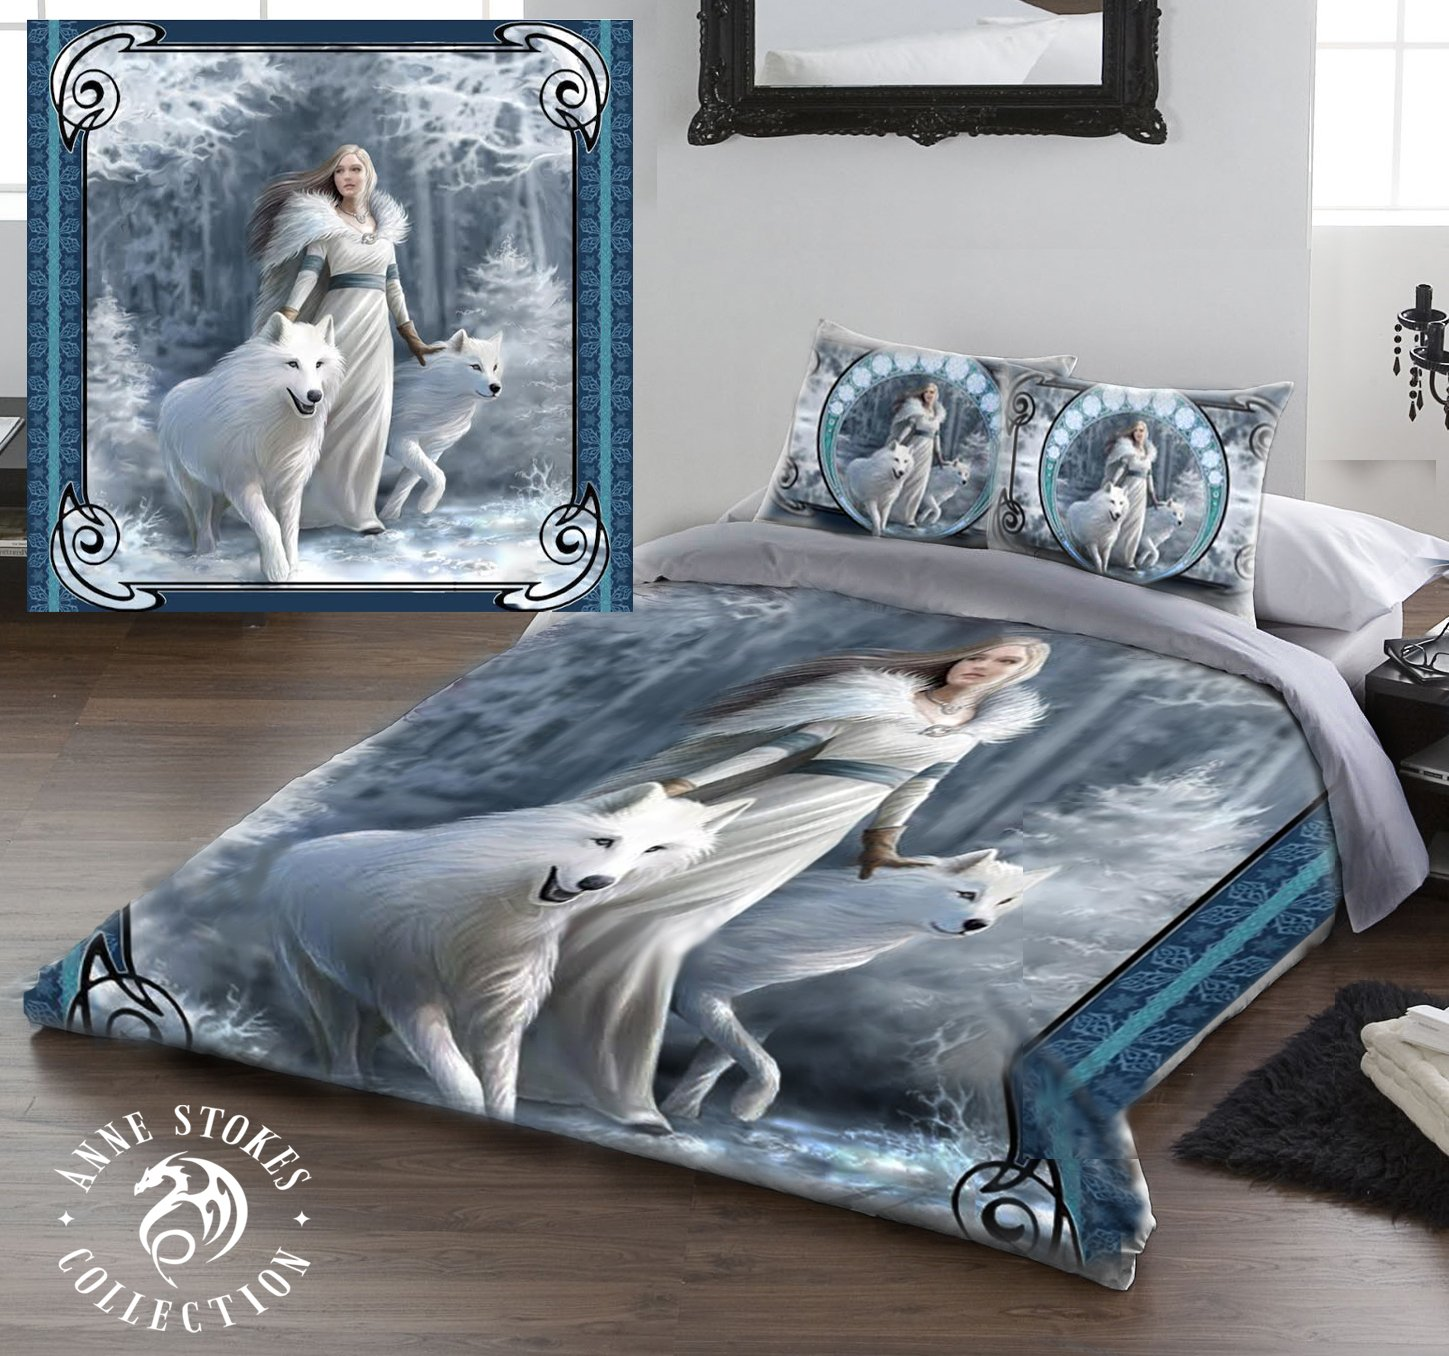 WINTER GUARDIANS Duvet & Pillows Case Covers Set for Queensize Bed Artwork By Anne Stokes by Wild Star Home